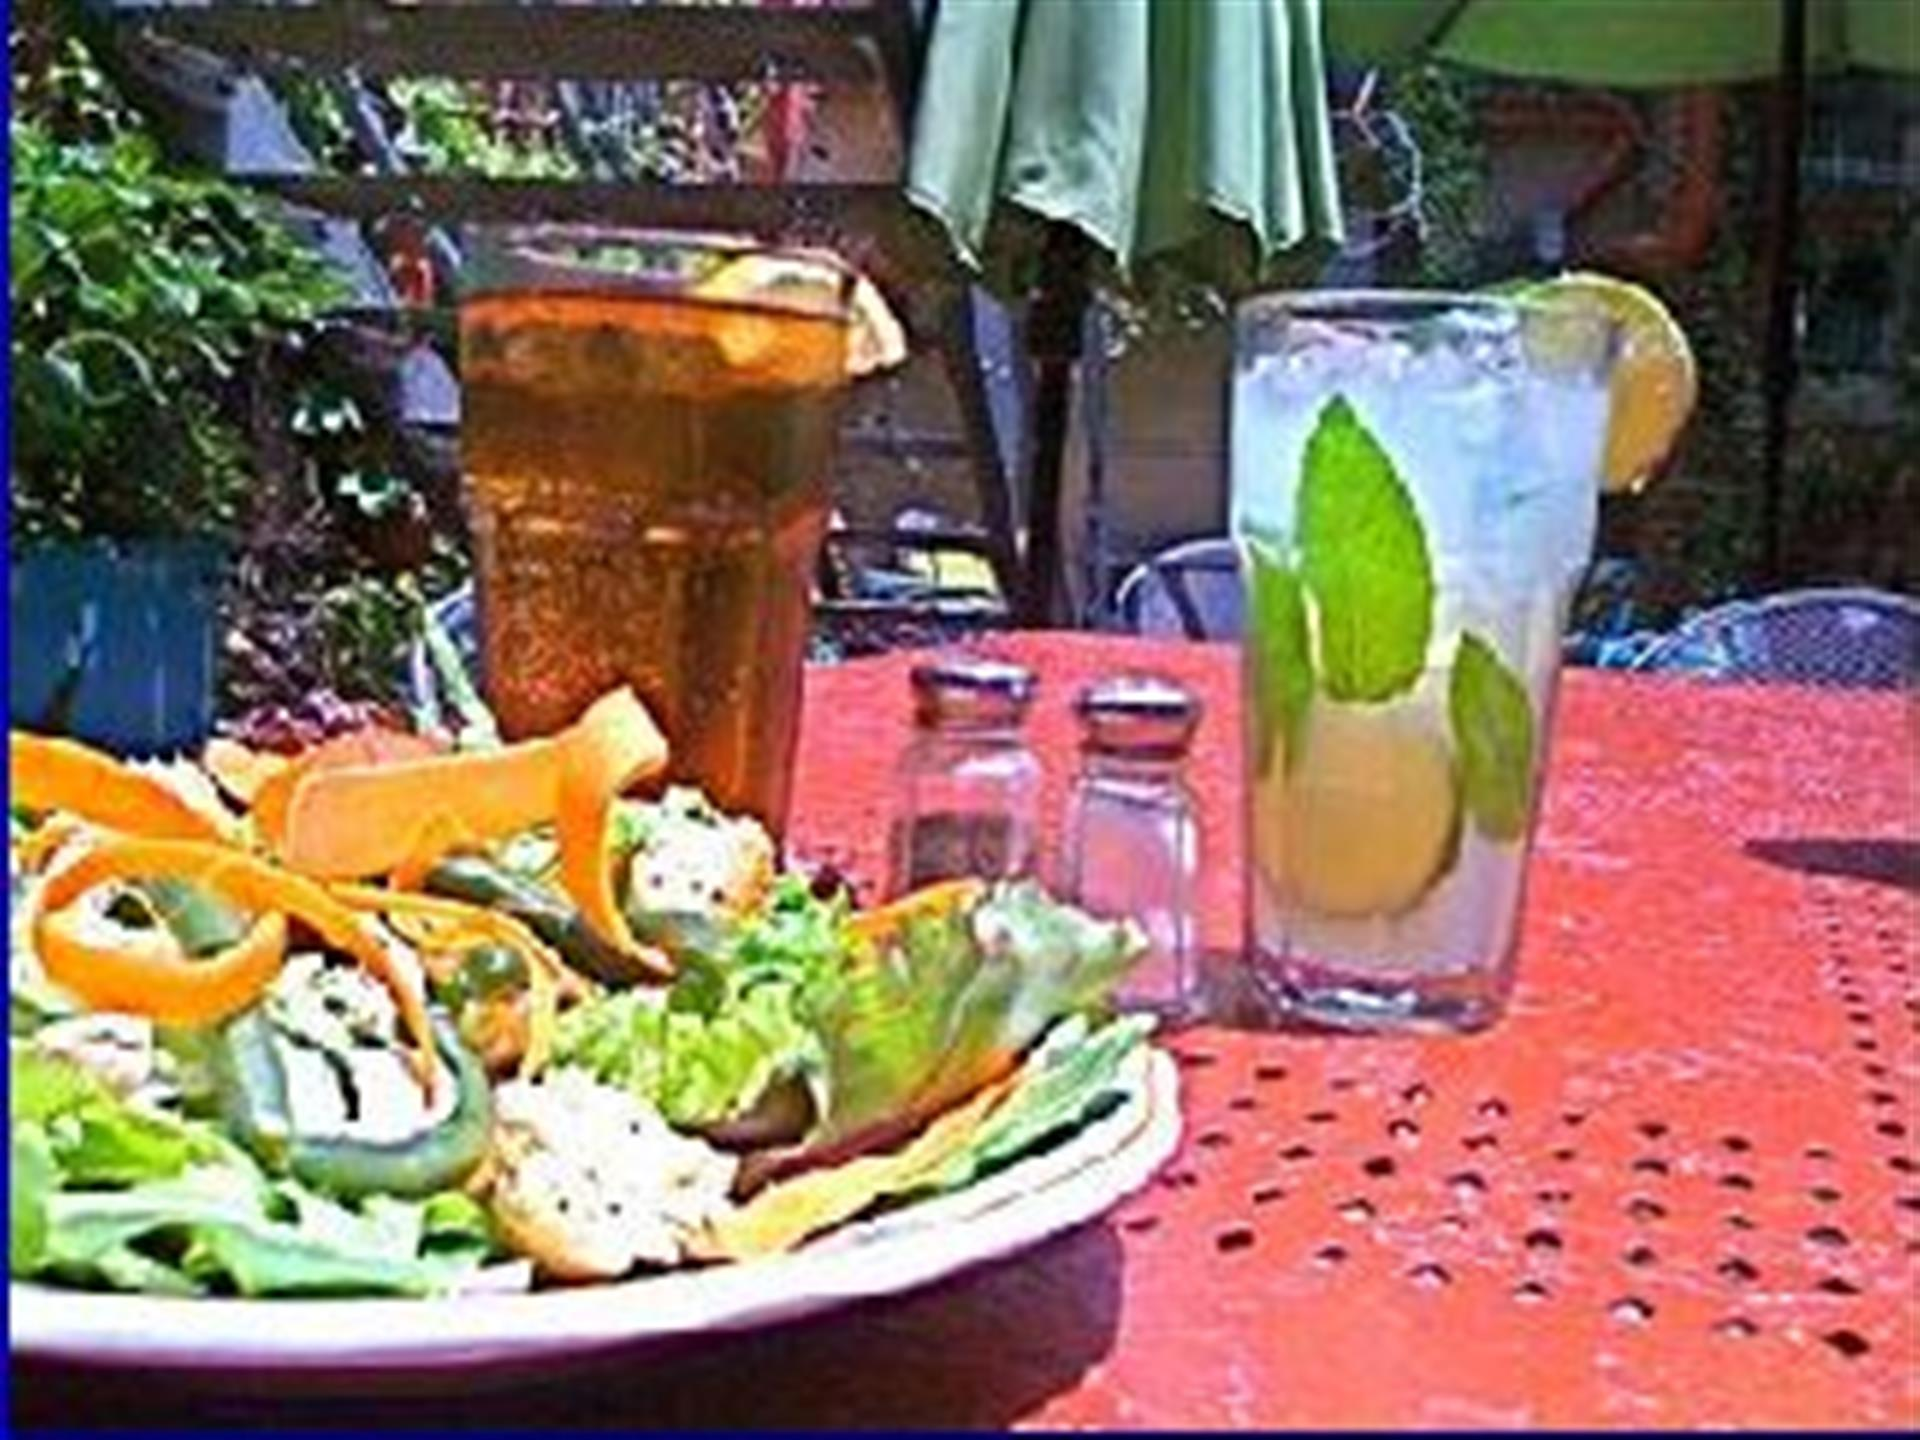 salad with two drinks in glasses